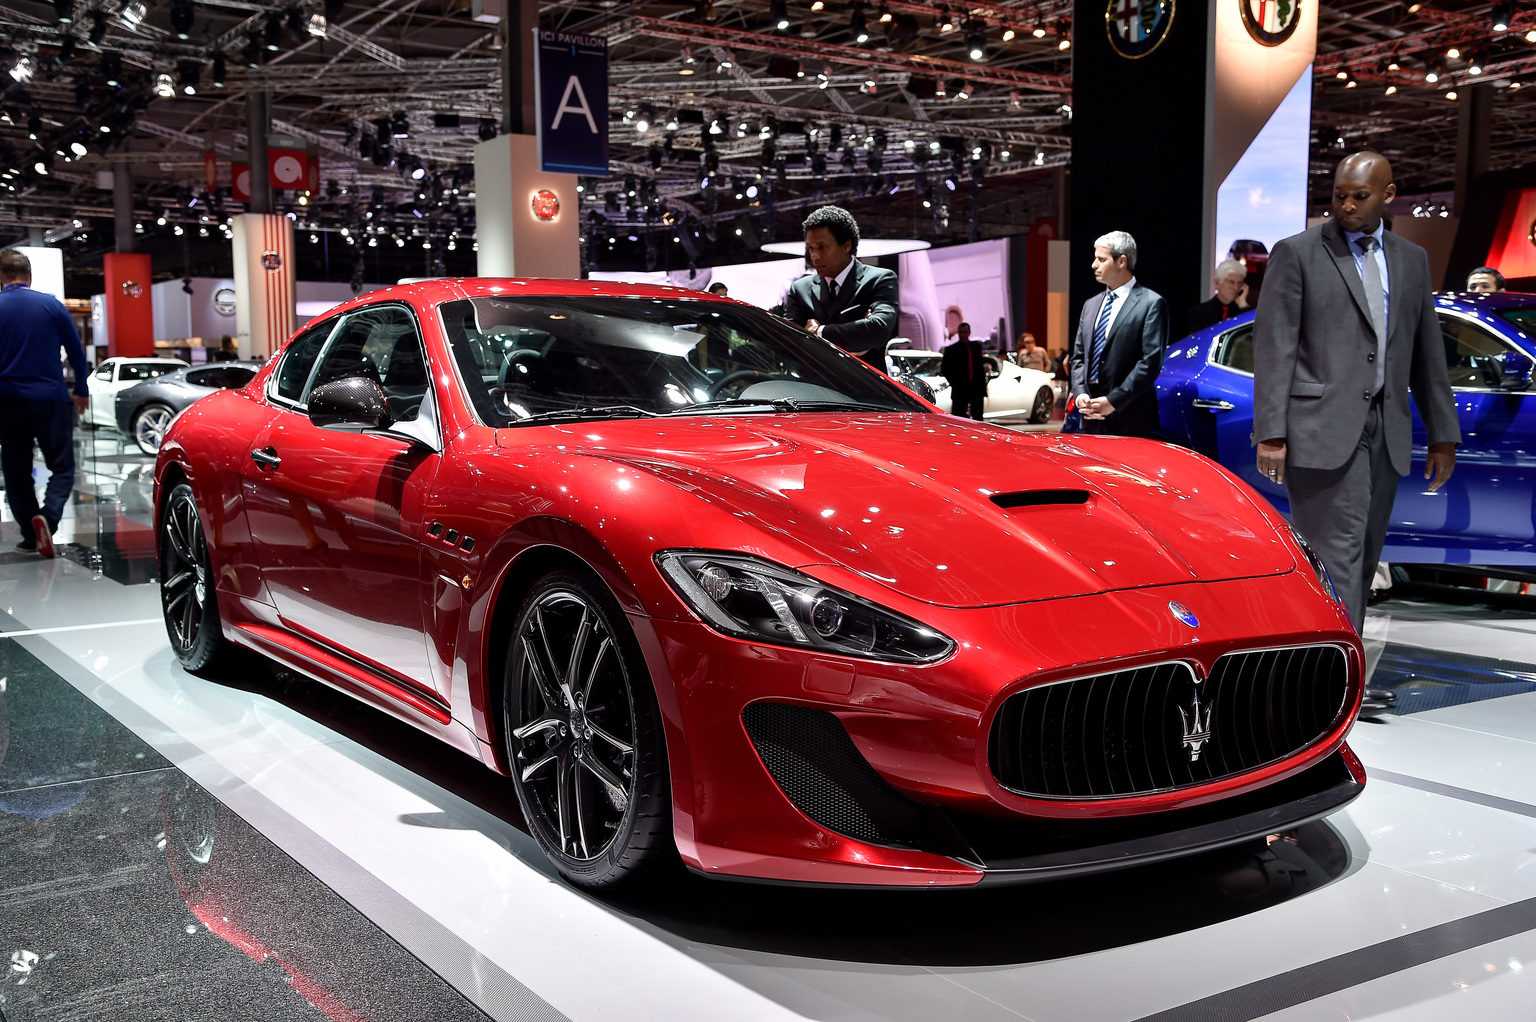 2013 maserati granturismo mc stradale gallery gallery. Black Bedroom Furniture Sets. Home Design Ideas